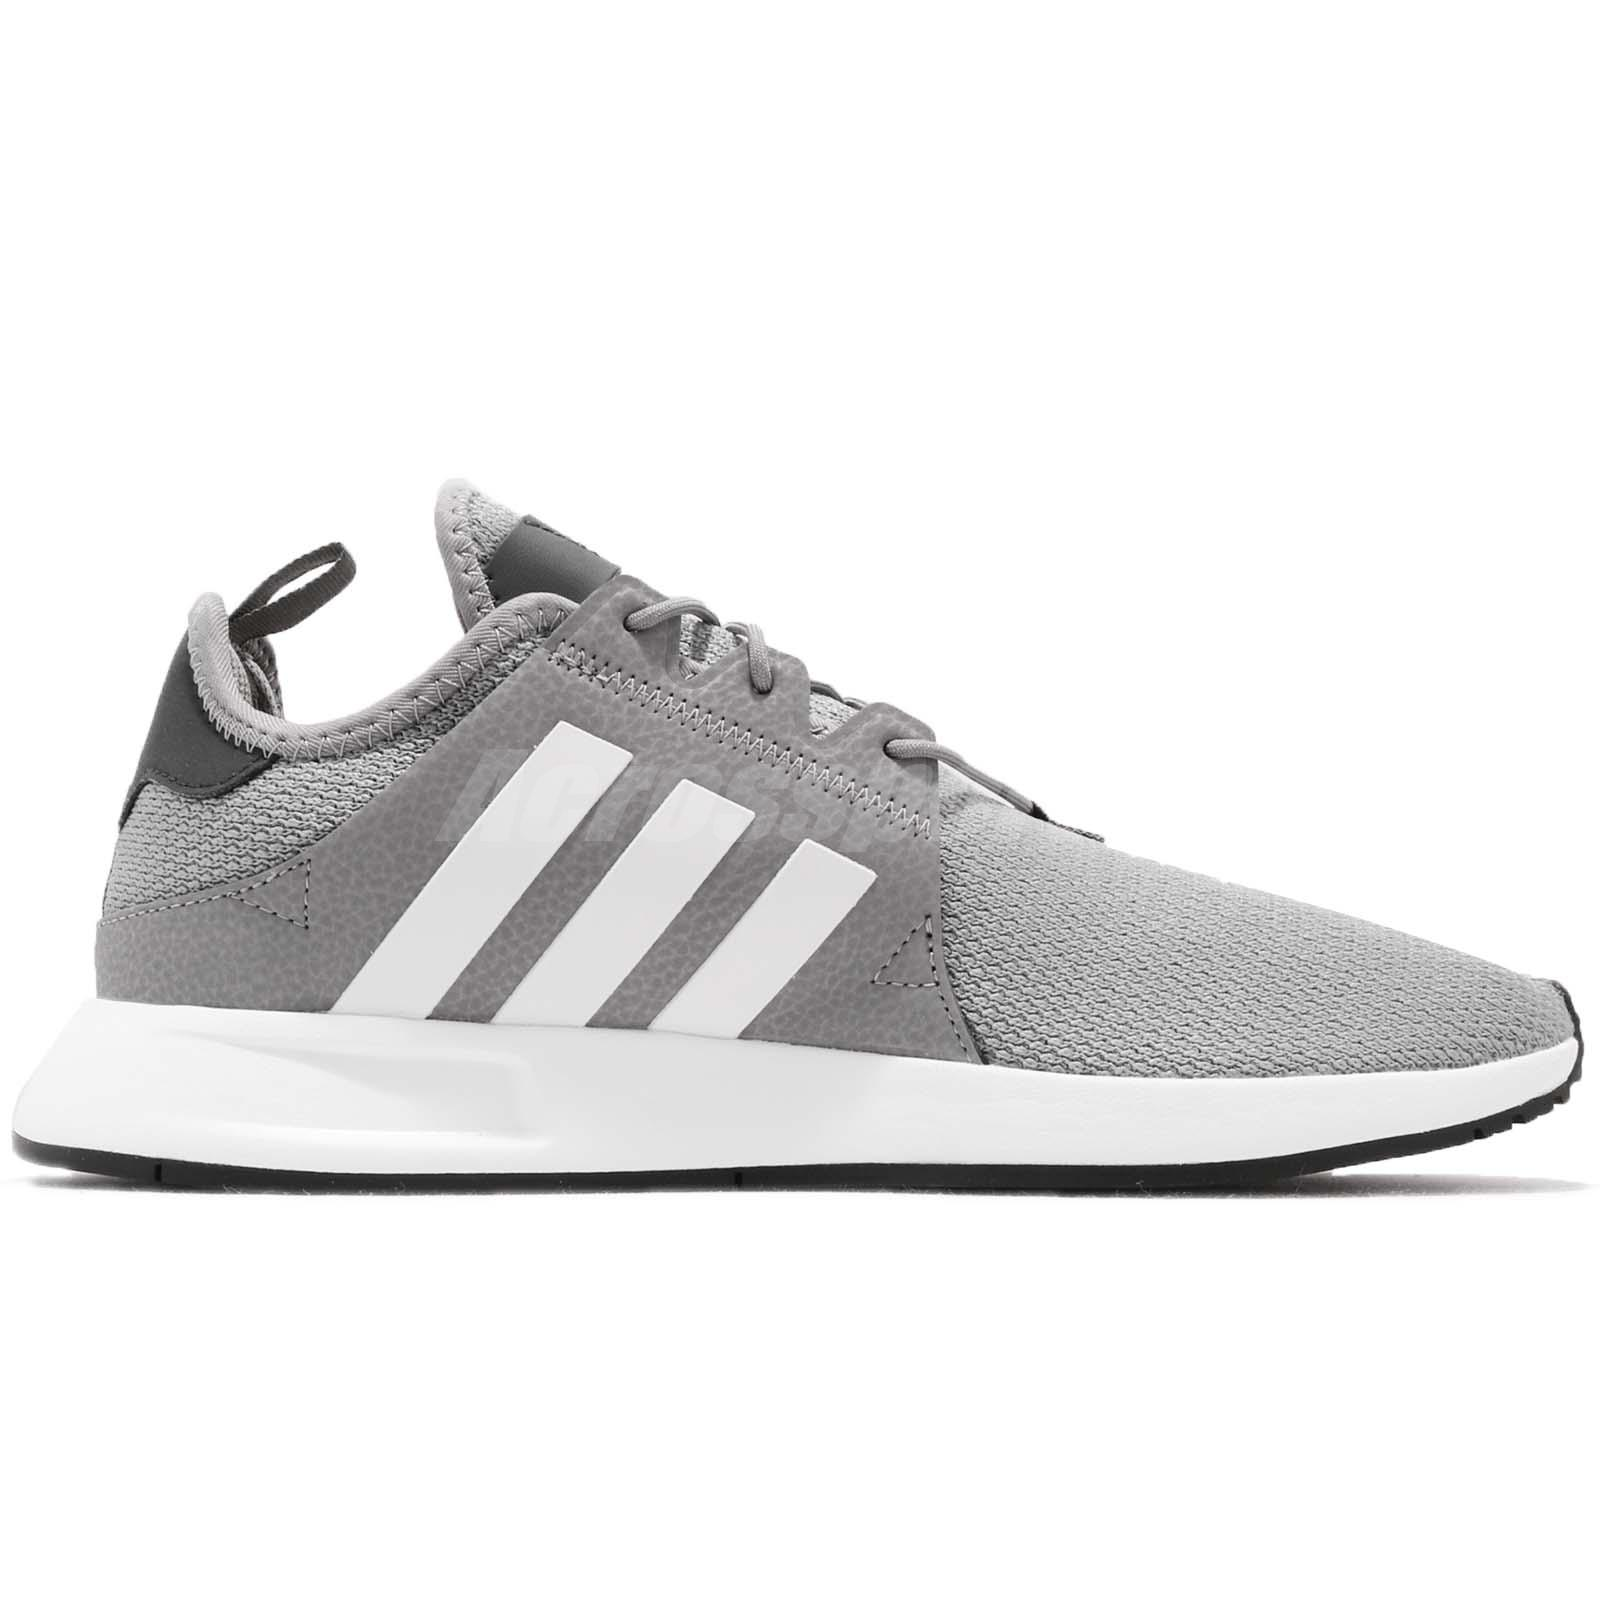 the best attitude d8db2 67767 Details about adidas Originals X_PLR Grey Footwear White Men Running Shoes  Sneakers CQ2408